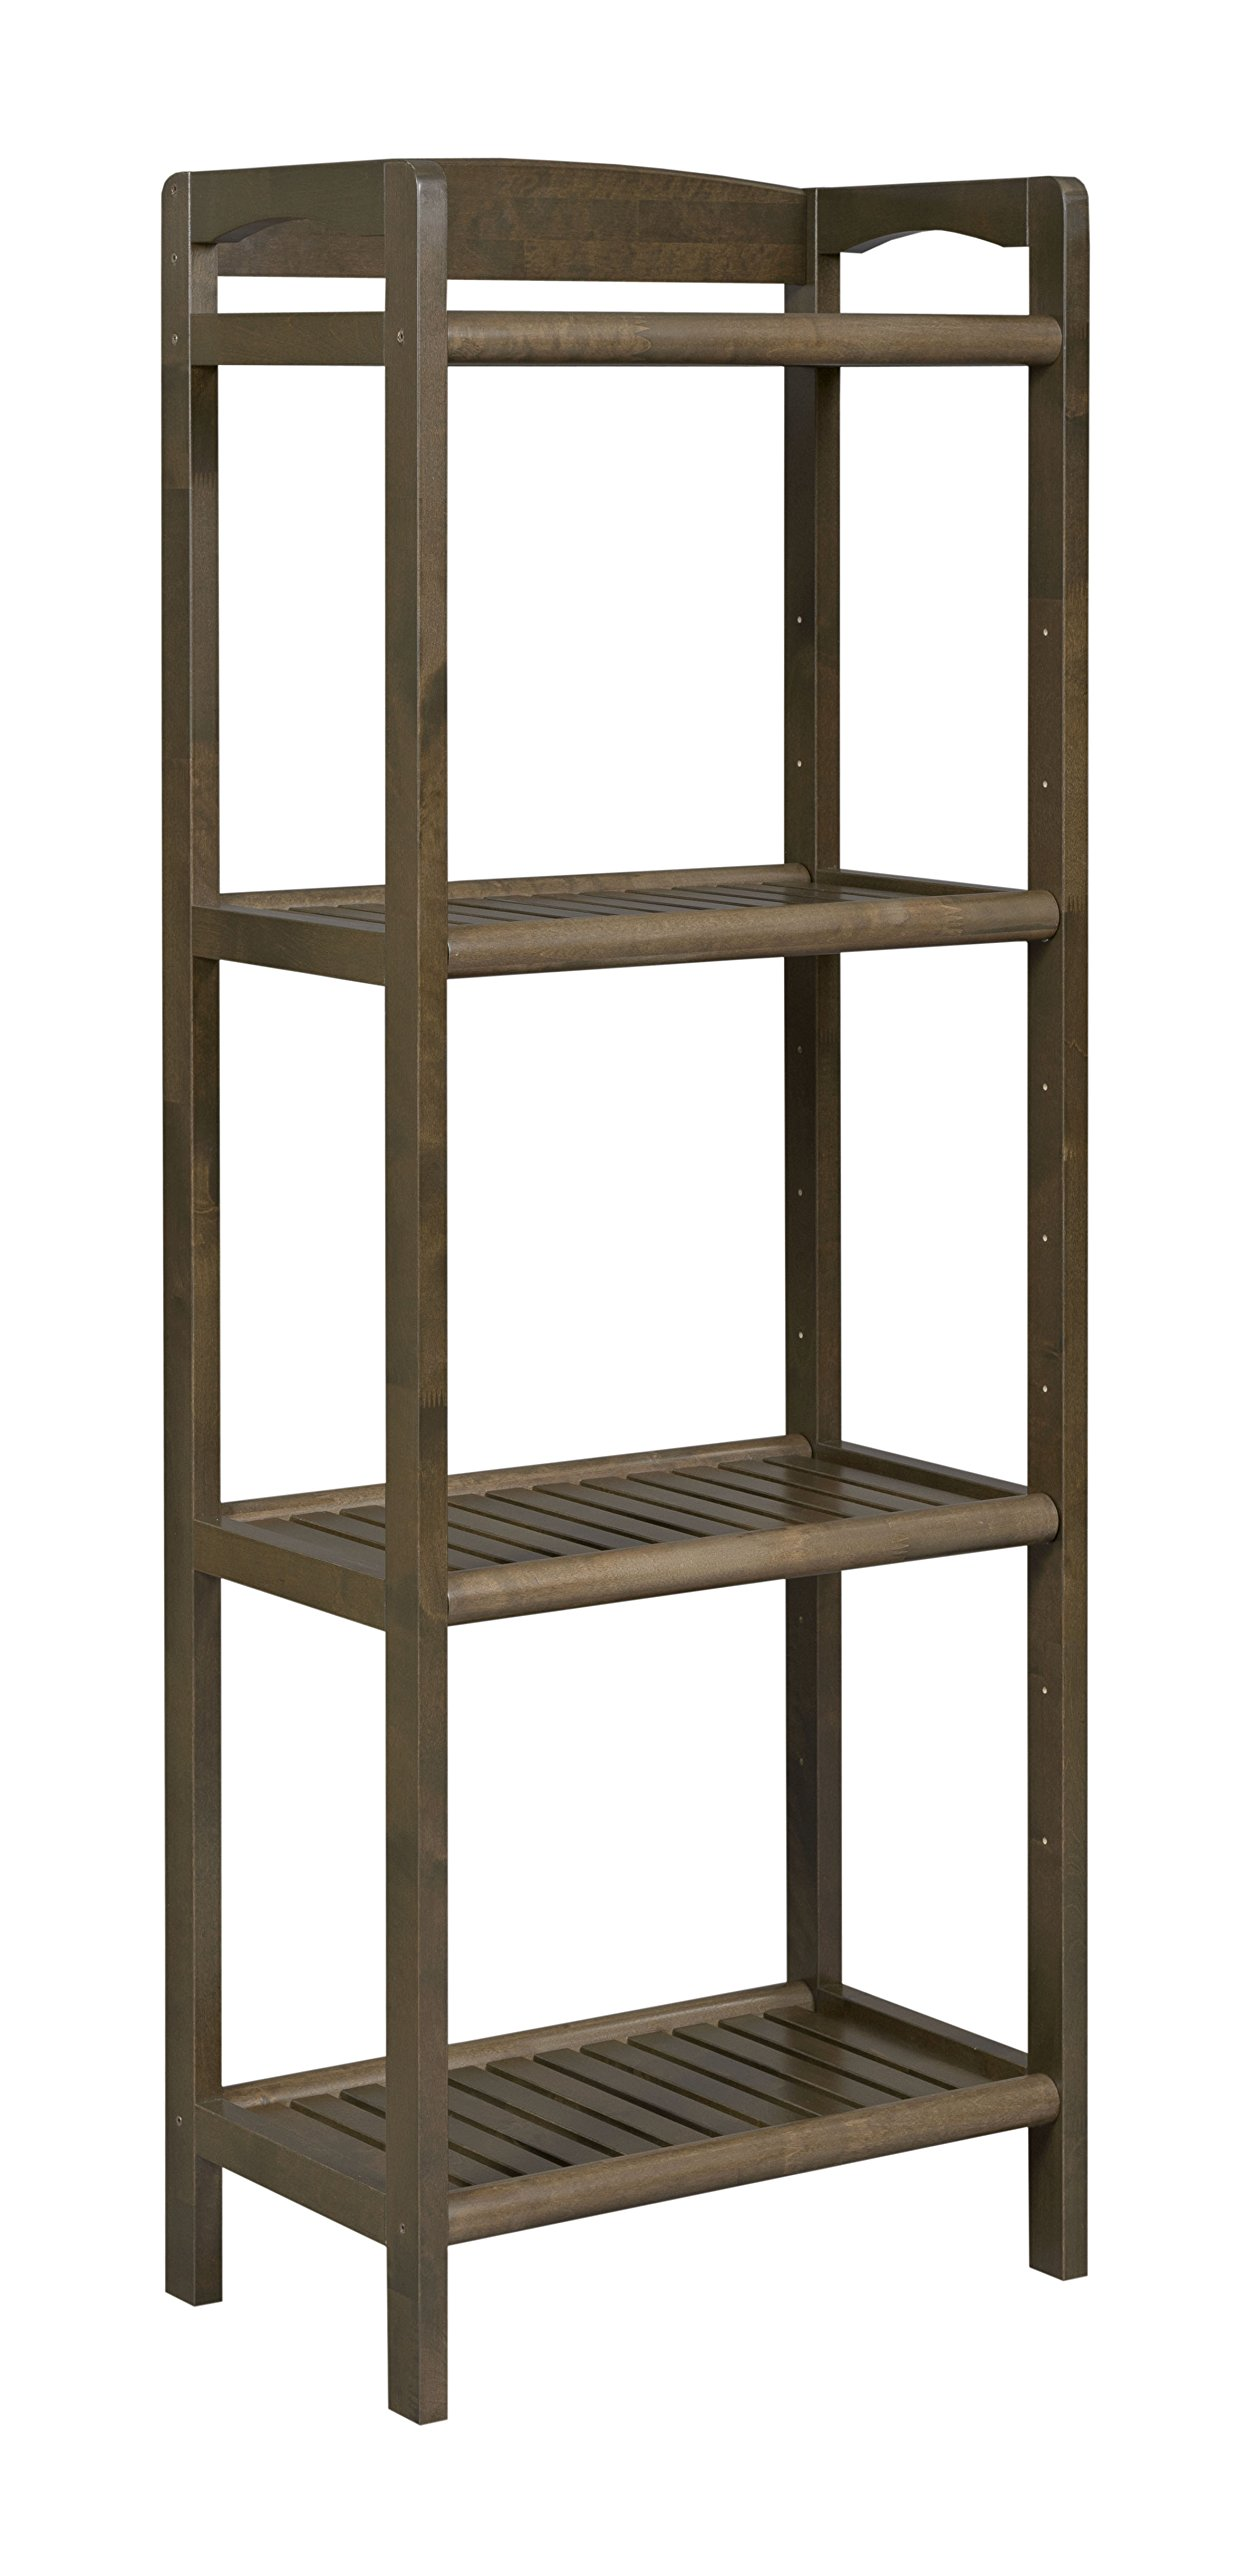 New Ridge Home Goods 2282-CHS Abingdon Tall Bookcase/Media Tower with Adjustable Shelves, One Size, Antique Chestnut by New Ridge Home Goods